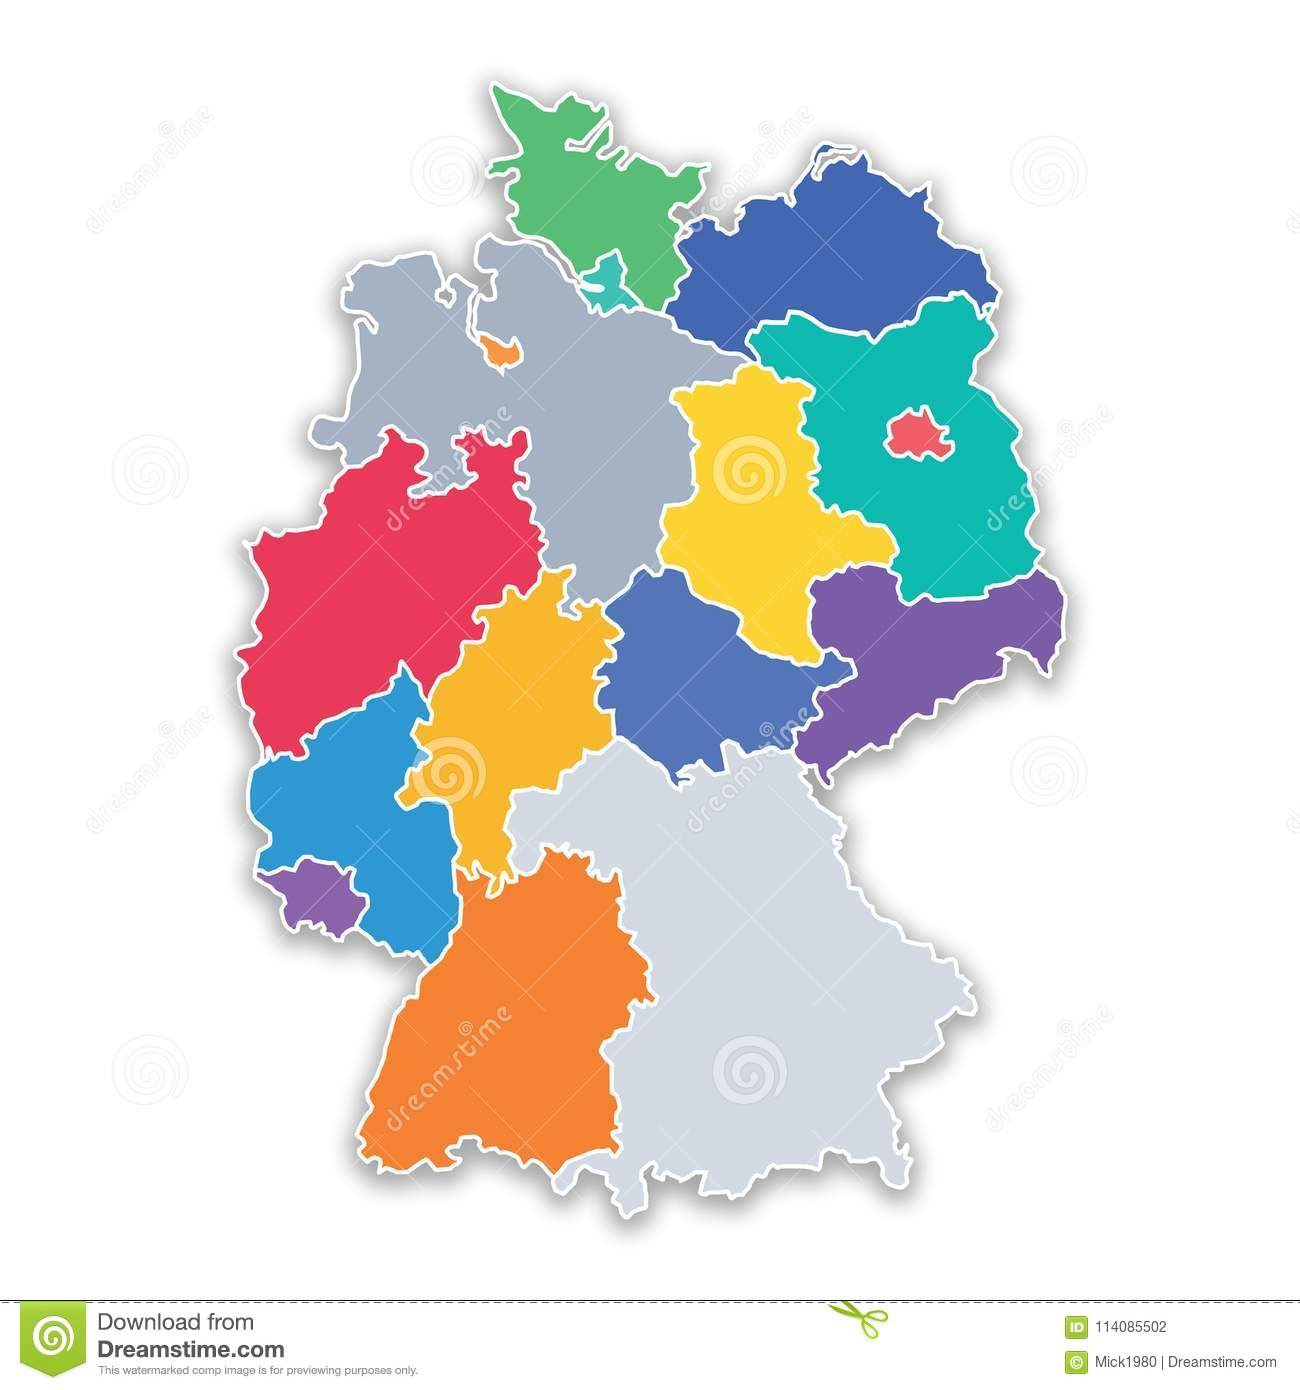 Map Of States In Germany.Map Of States Of Germany In Flat Colors Stock Illustration